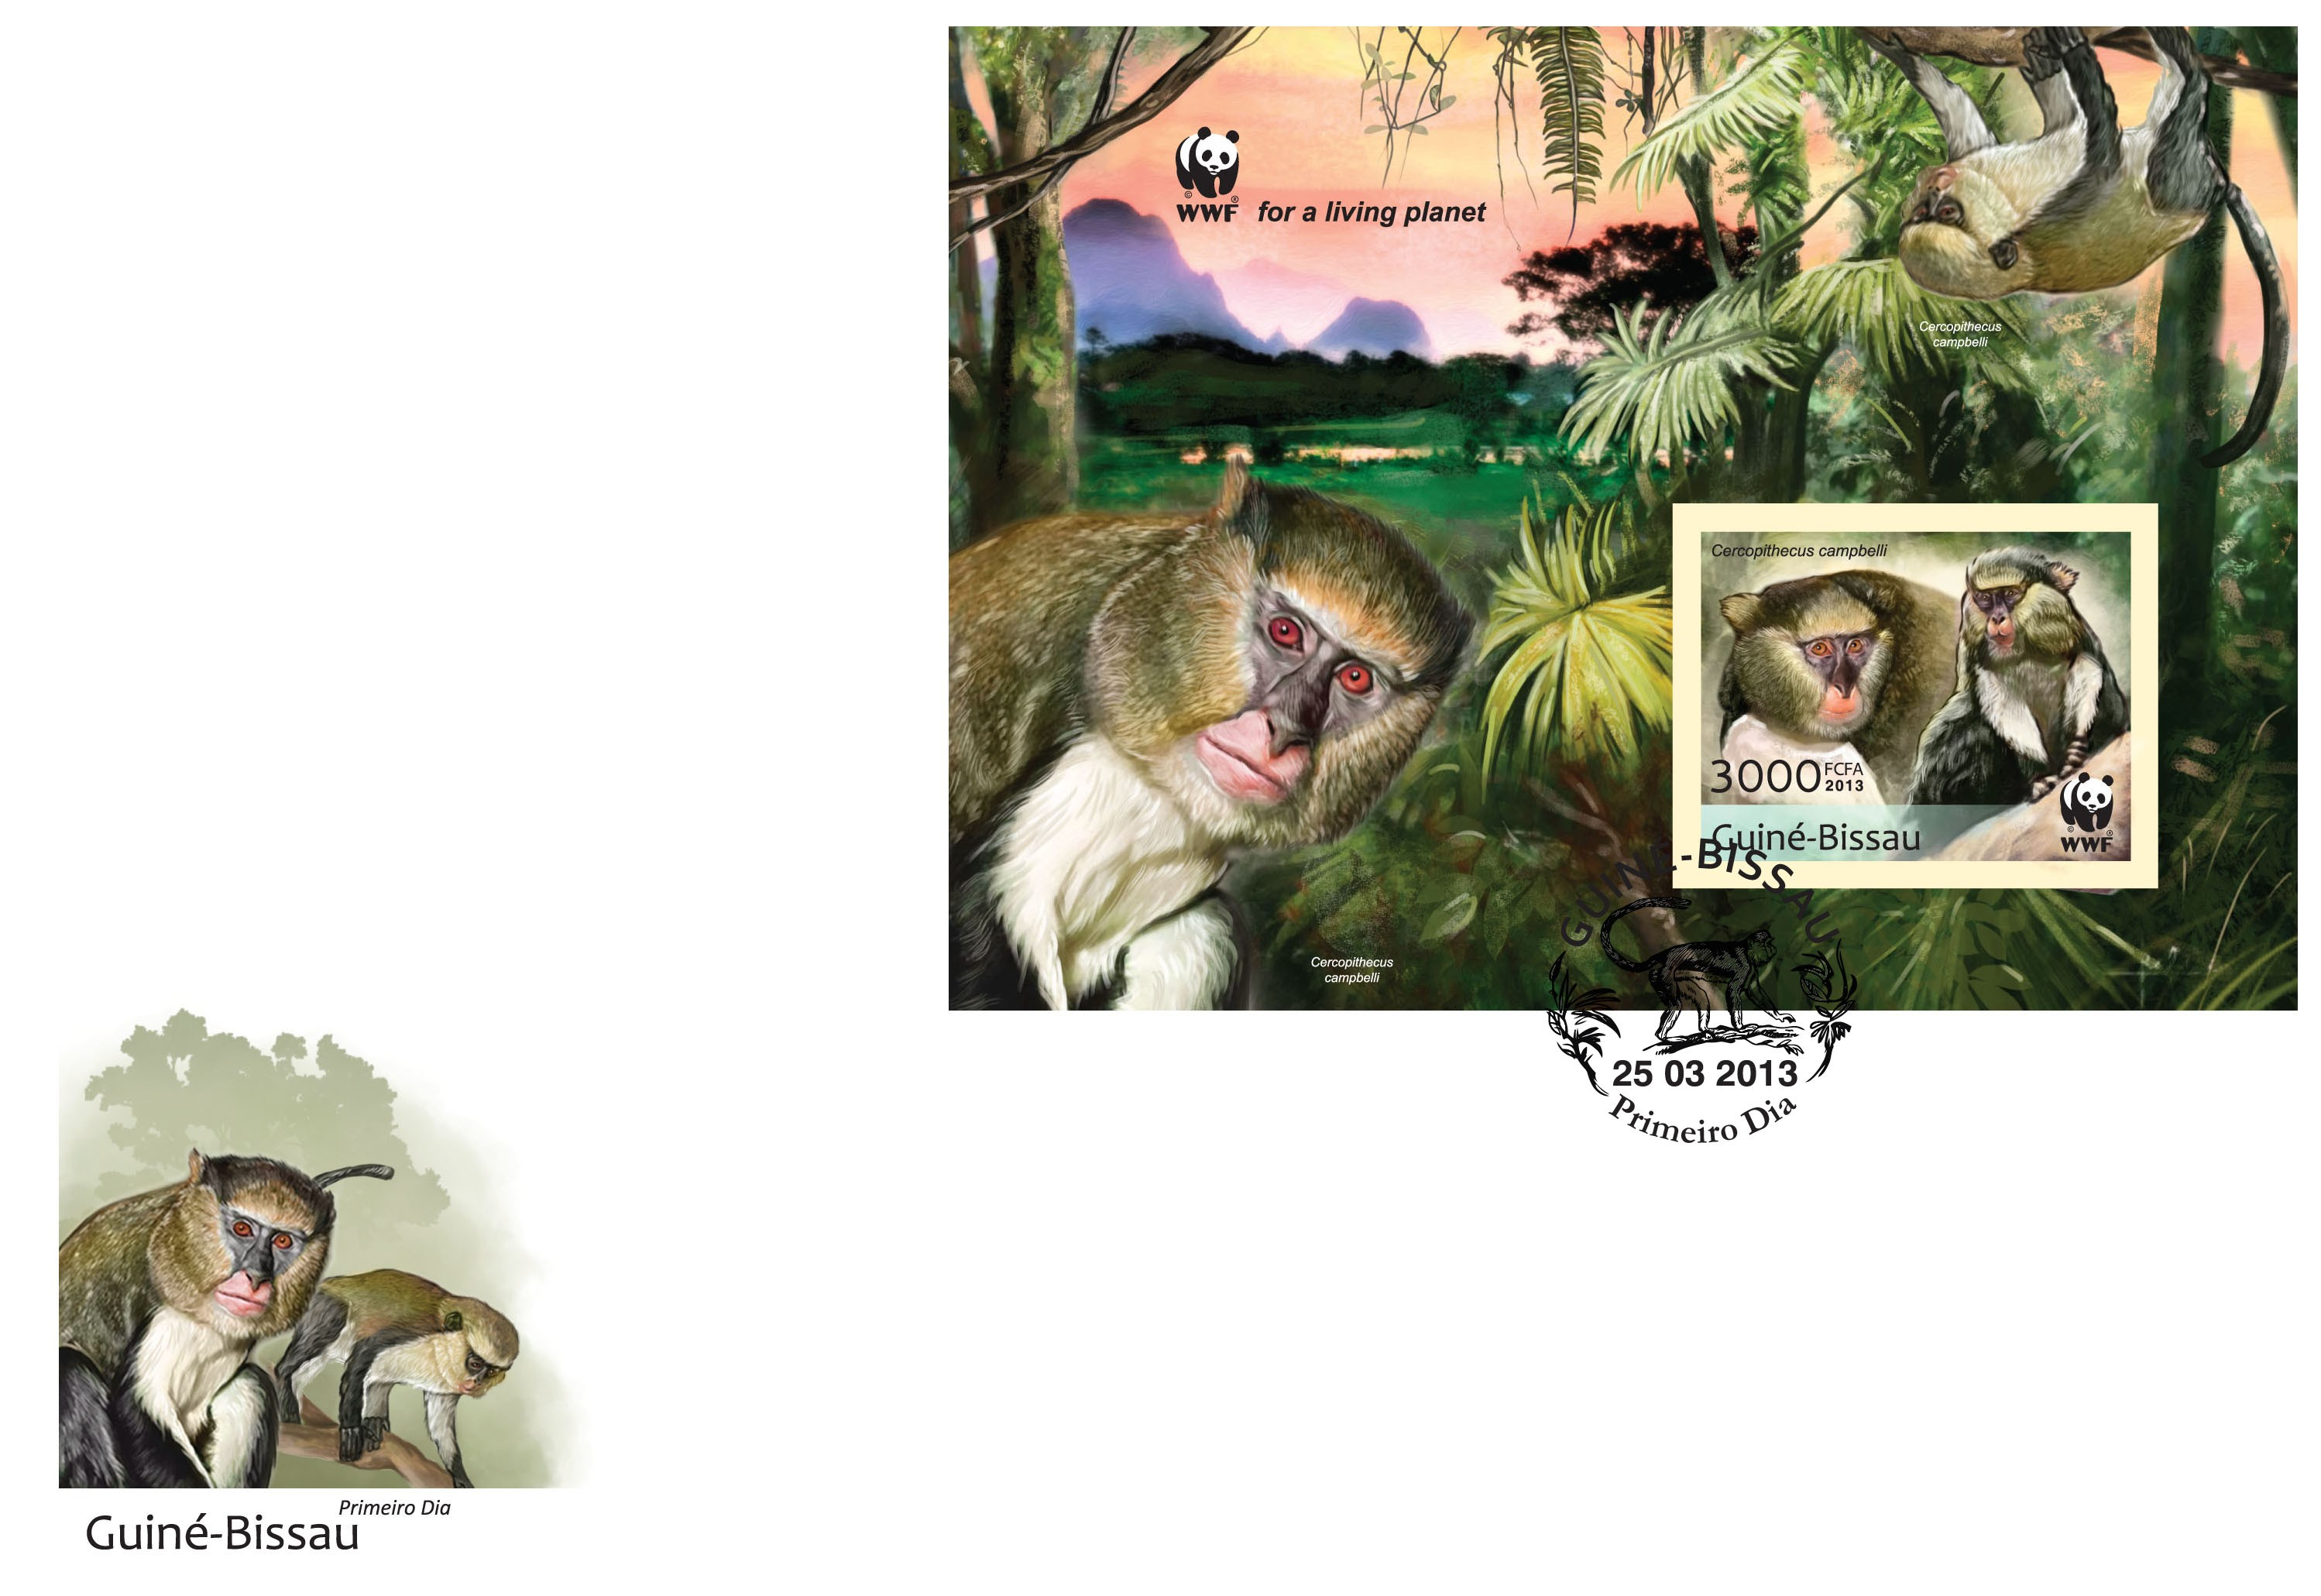 WWF - Monkeys (Cercopithecus campgelli) Souvenir sheet - FDC - Imperforated - Issue of Guinée-Bissau postage stamps